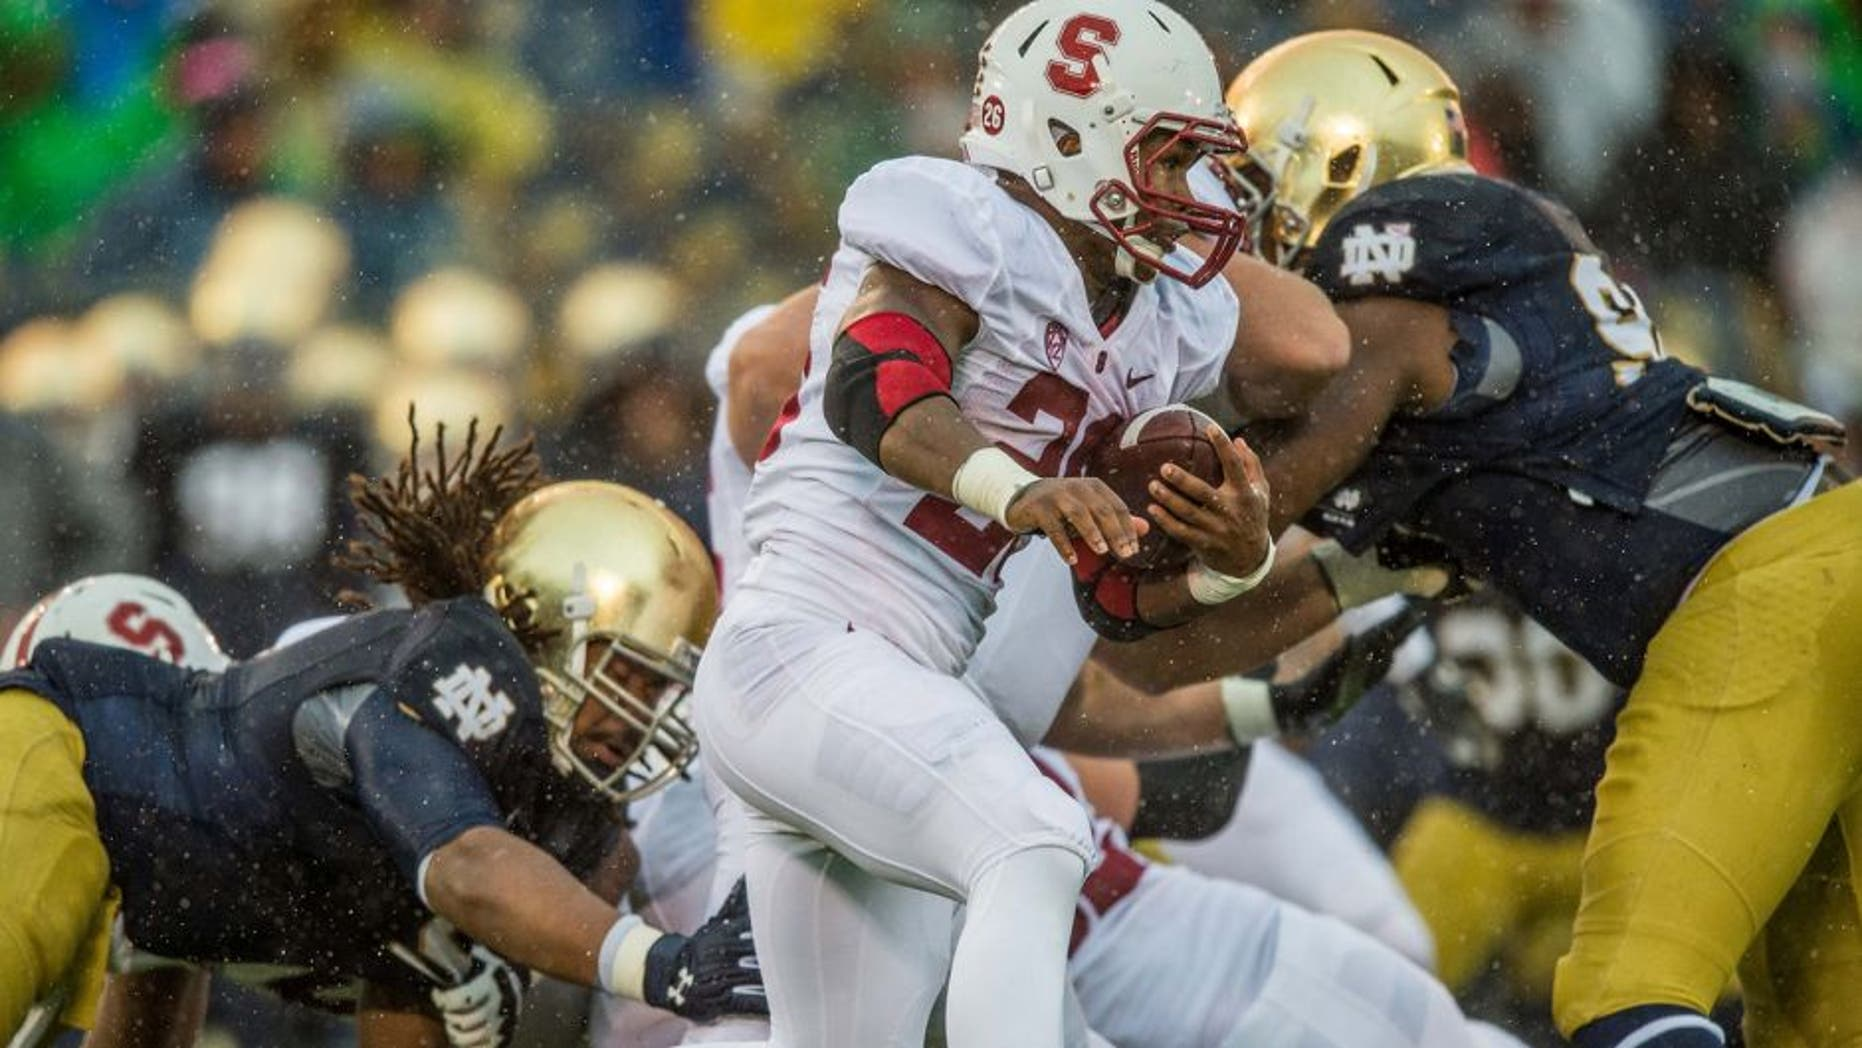 Oct 4, 2014; South Bend, IN, USA; Stanford Cardinal running back Barry Sanders (26) carries the ball in the second quarter against the Notre Dame Fighting Irish at Notre Dame Stadium. Mandatory Credit: Matt Cashore-USA TODAY Sports